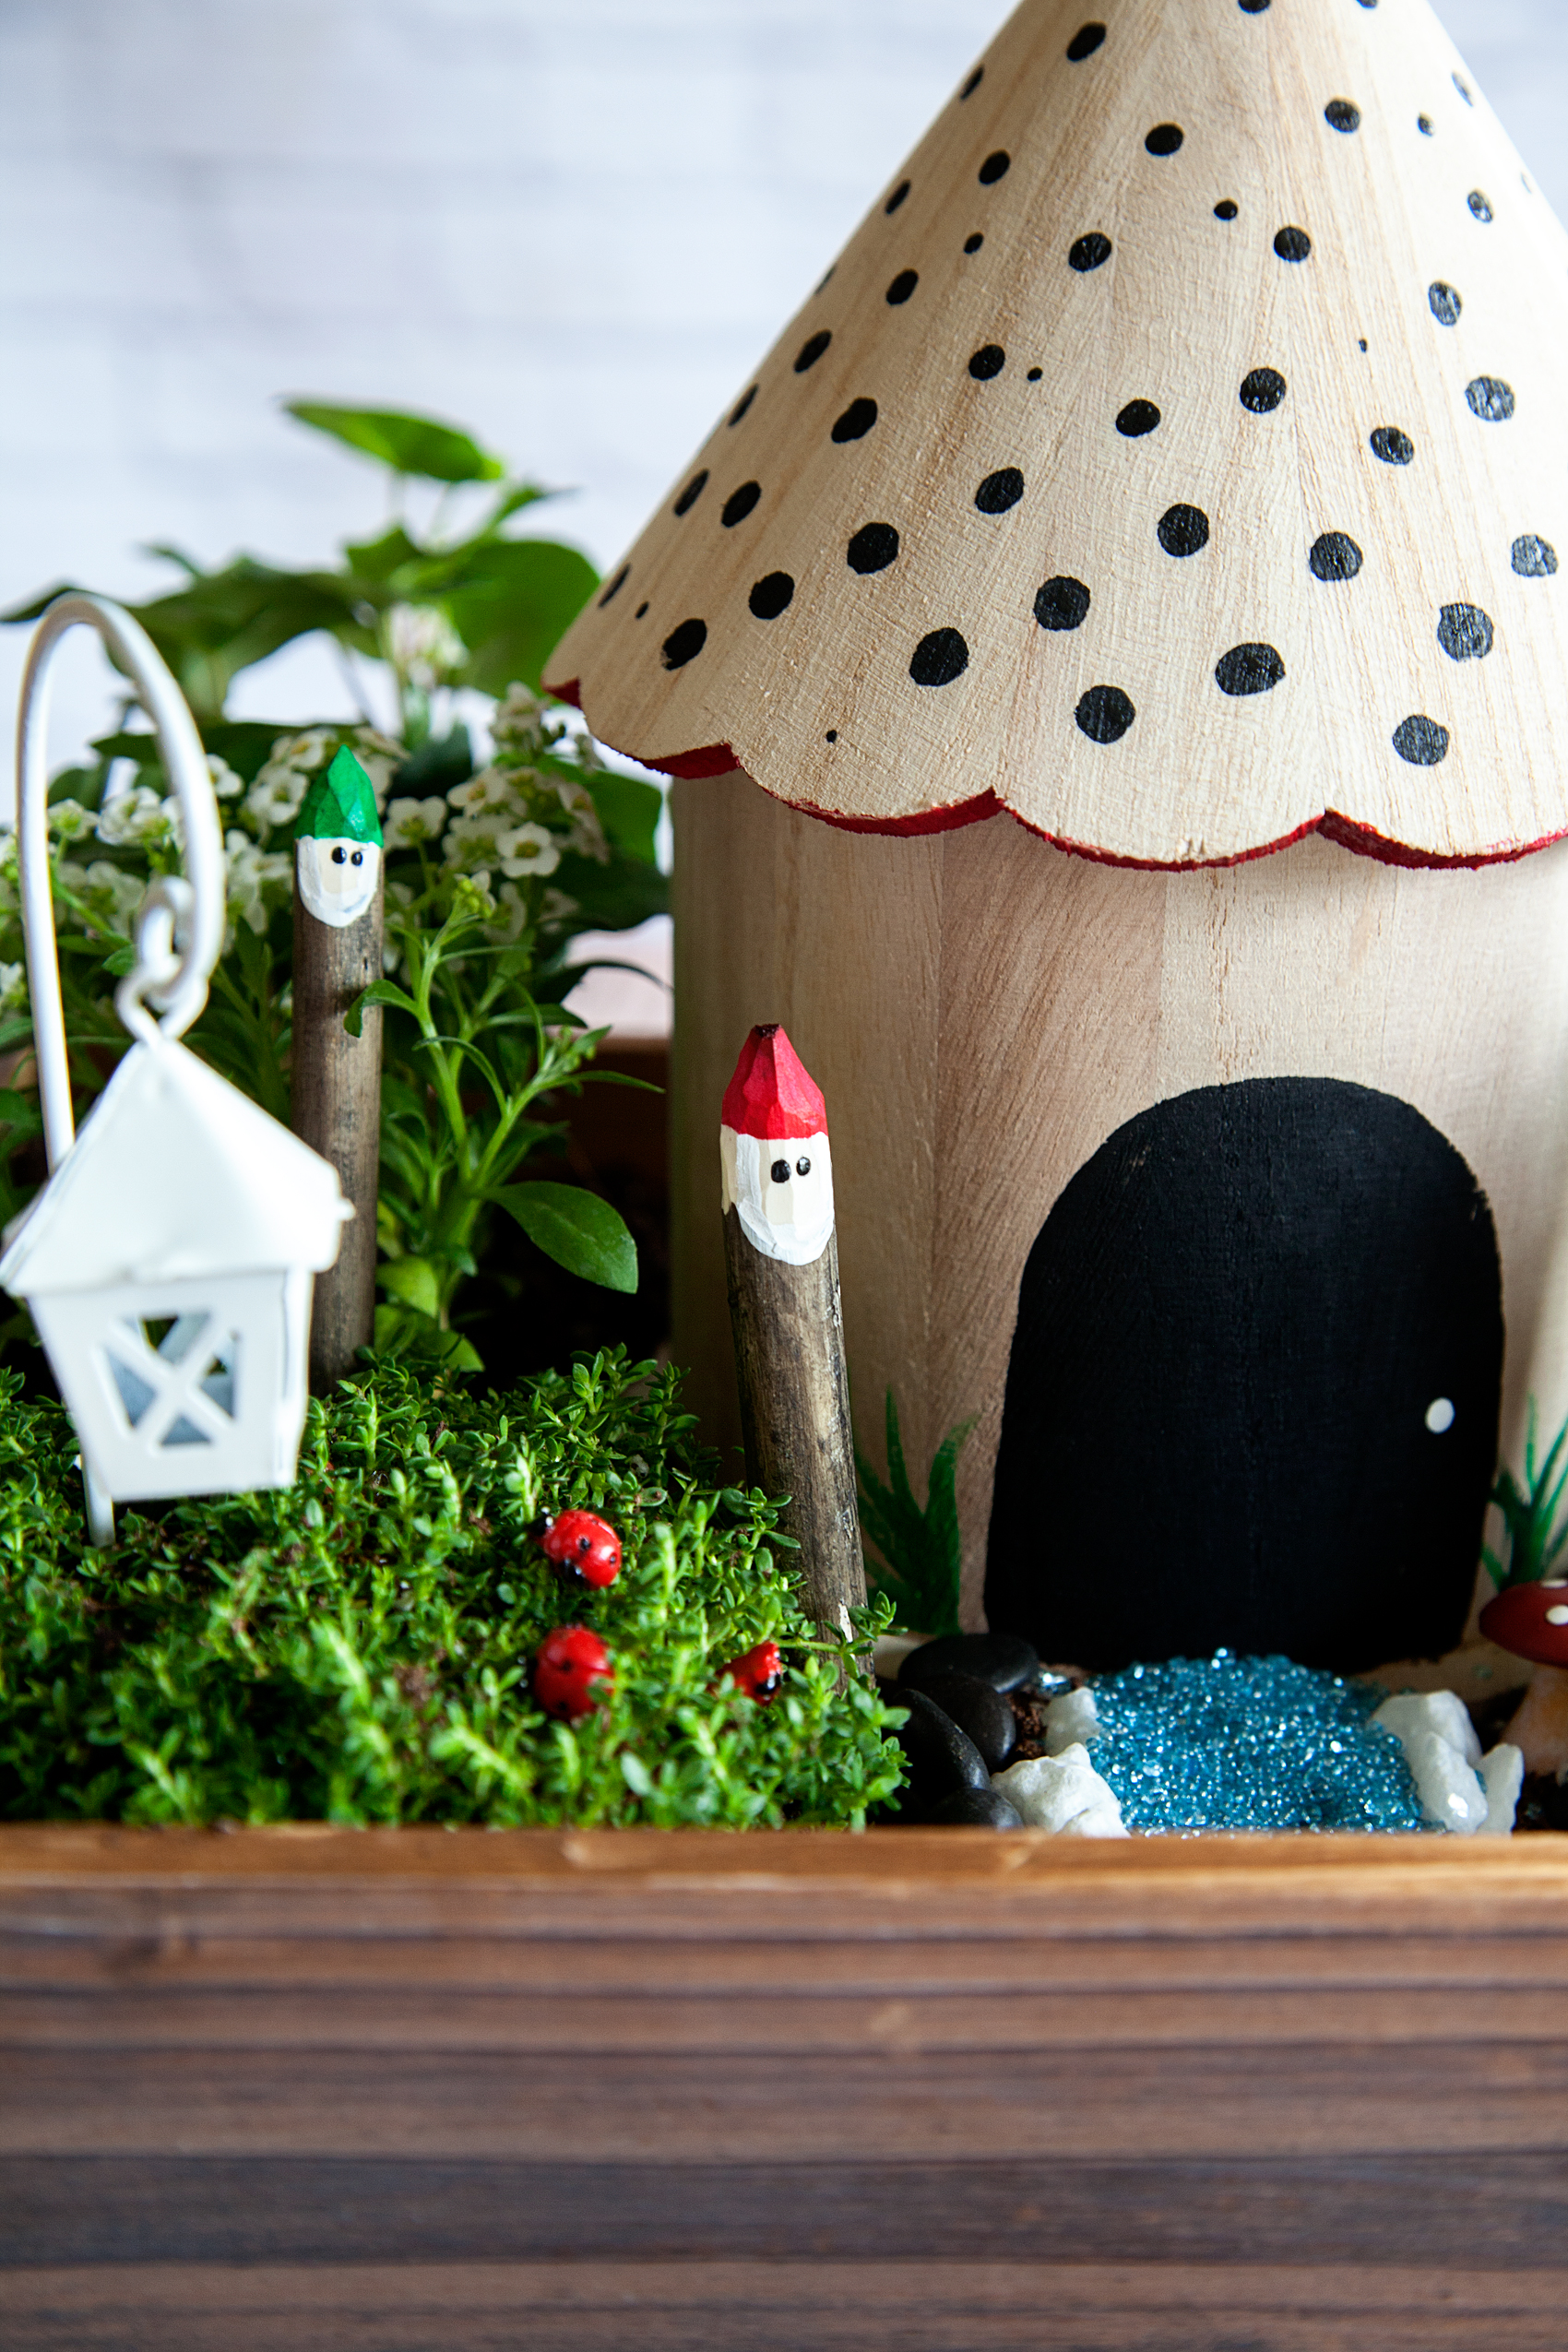 Gnome Gardens are a fun trend that the whole family can participate in. Create your own Gnomes with some sticks and @decoart Patio Paint.